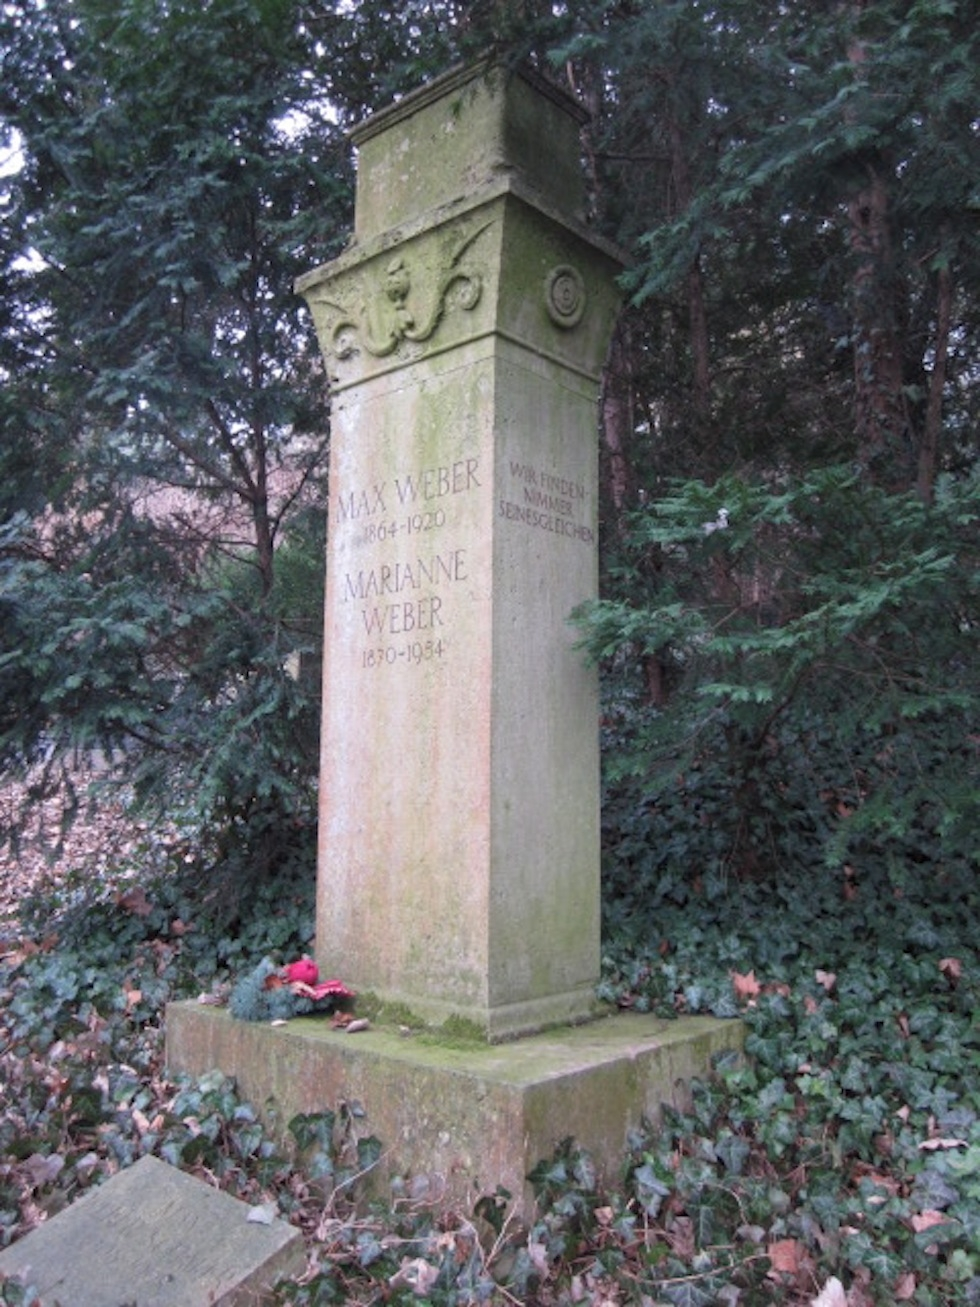 Photograph of Max Weber's grave, courtesy of the author